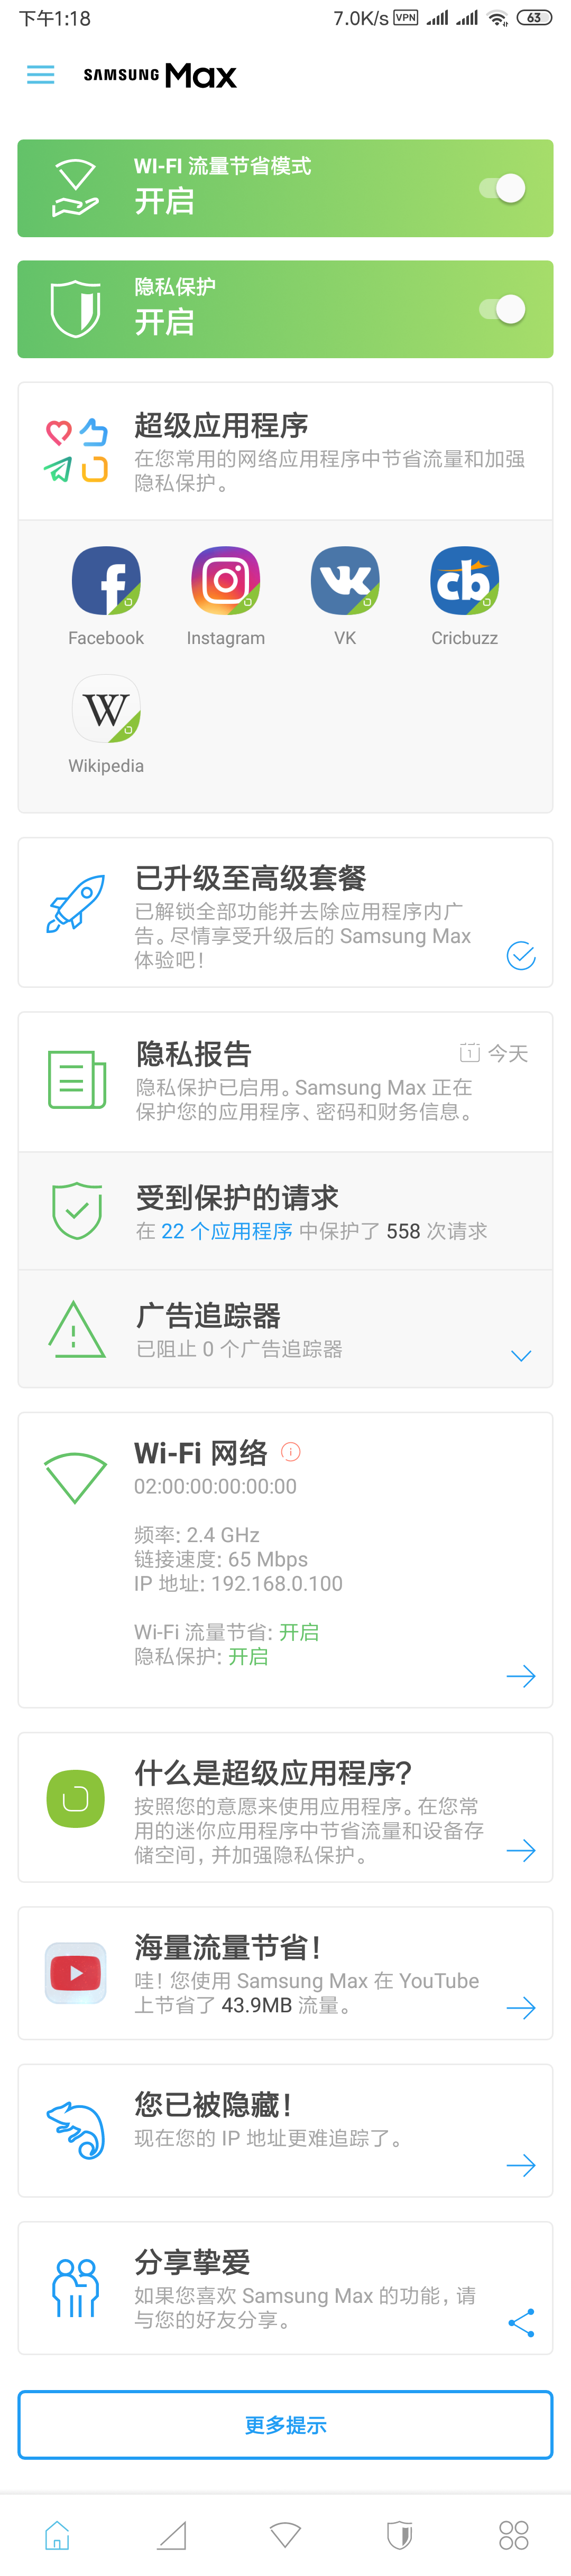 一个优秀的加密流量安卓apk——Samsung Max Data Savings Privacy Protection